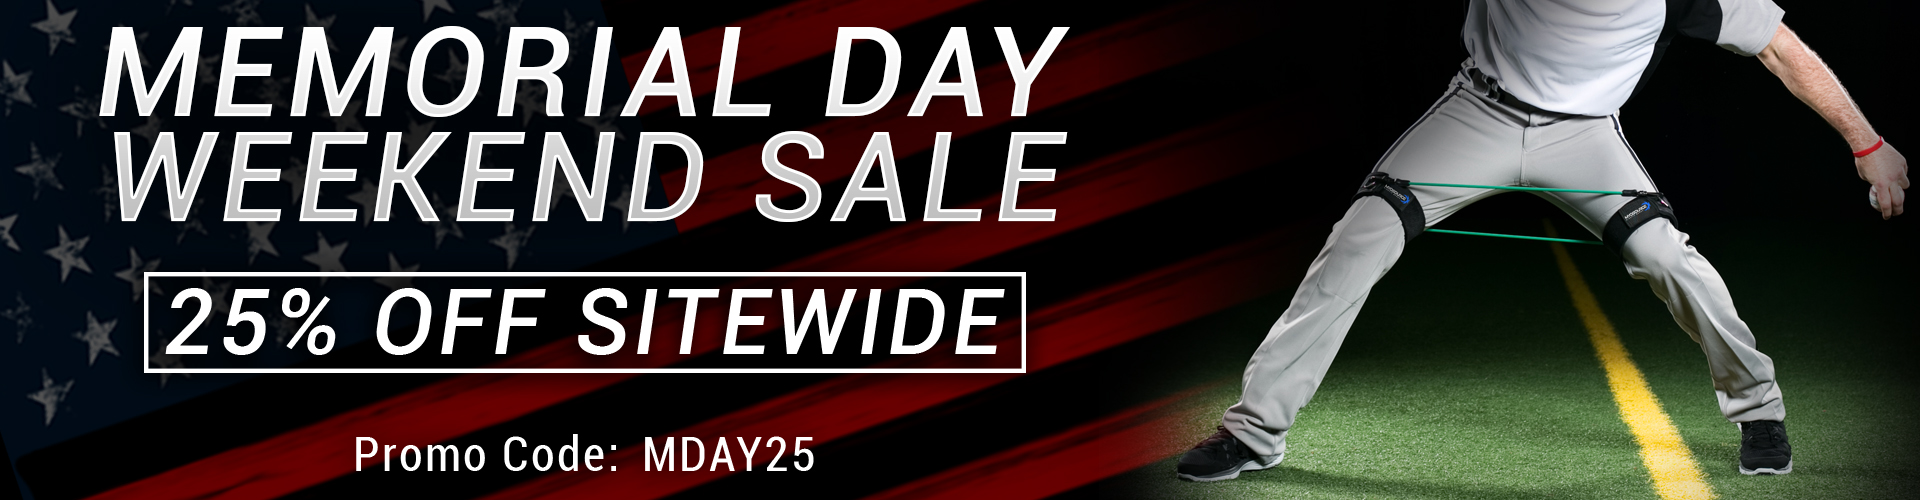 Memorial Day 2018 Weekend Sale. 25% off site wide with promo code: MDAY25